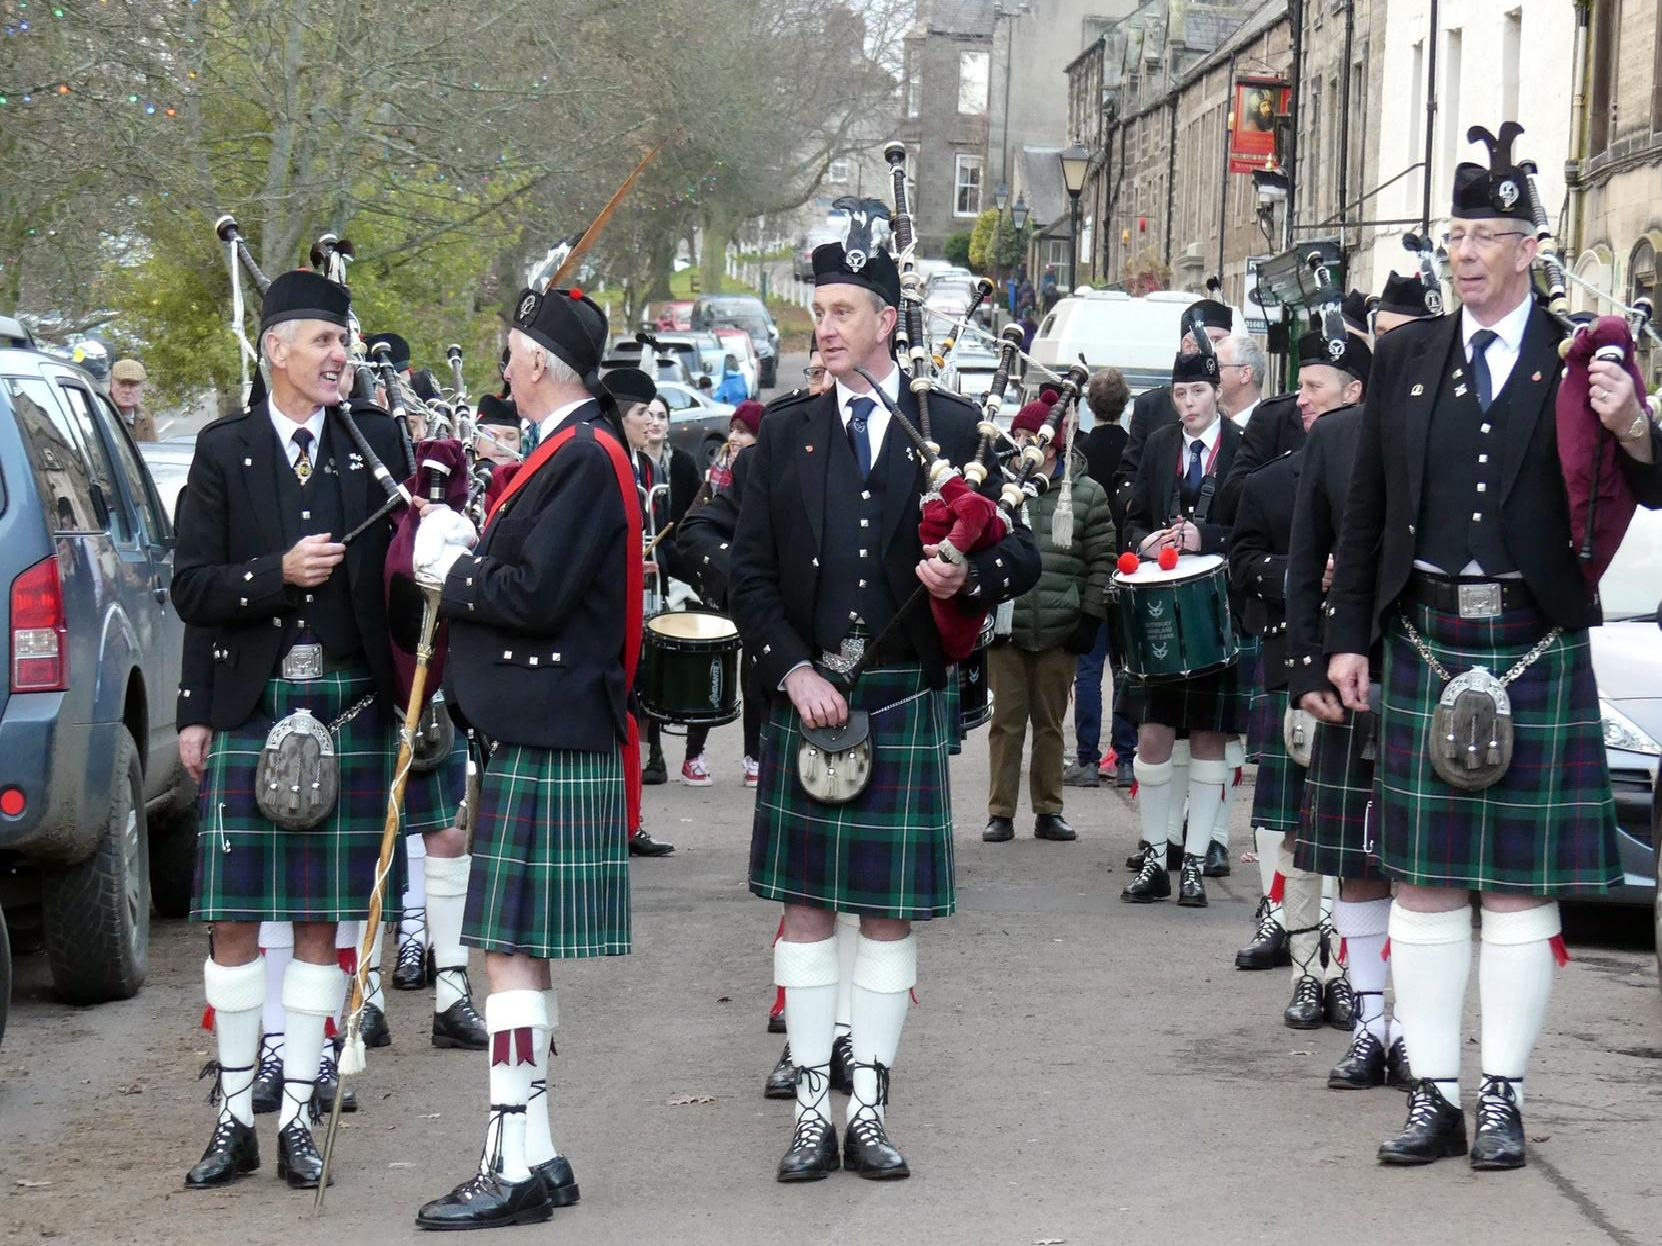 Rothbury Highland Pipe Band on their New Year's Day tour, photographed by Jeff Reynalds.